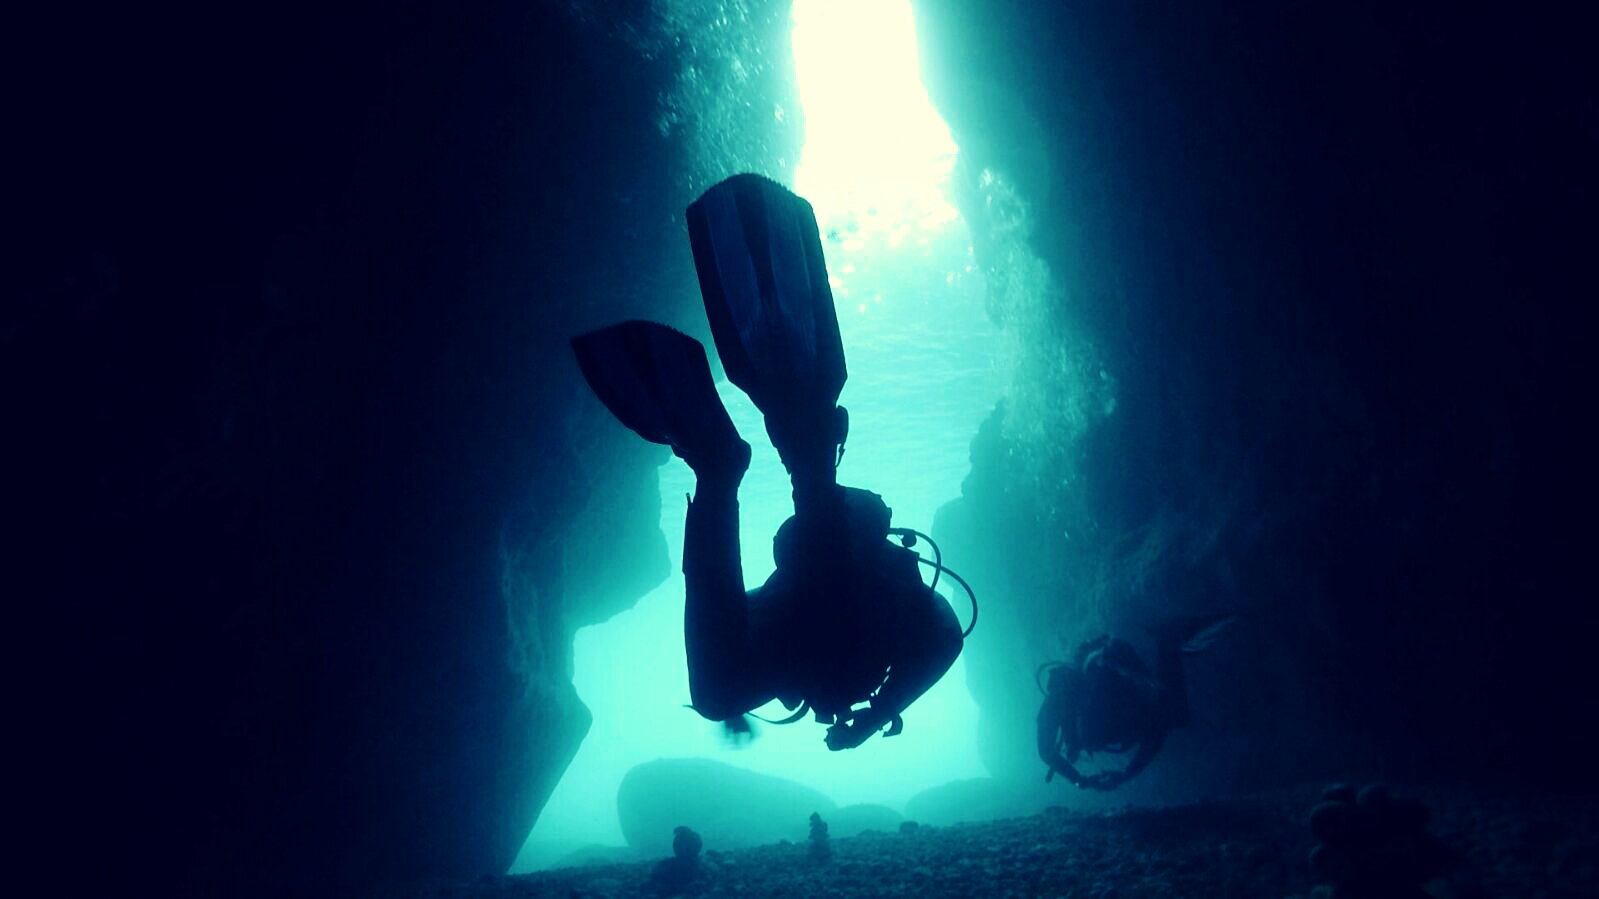 Swimming through xwenji tunnel, a dive site on the island of Gozo